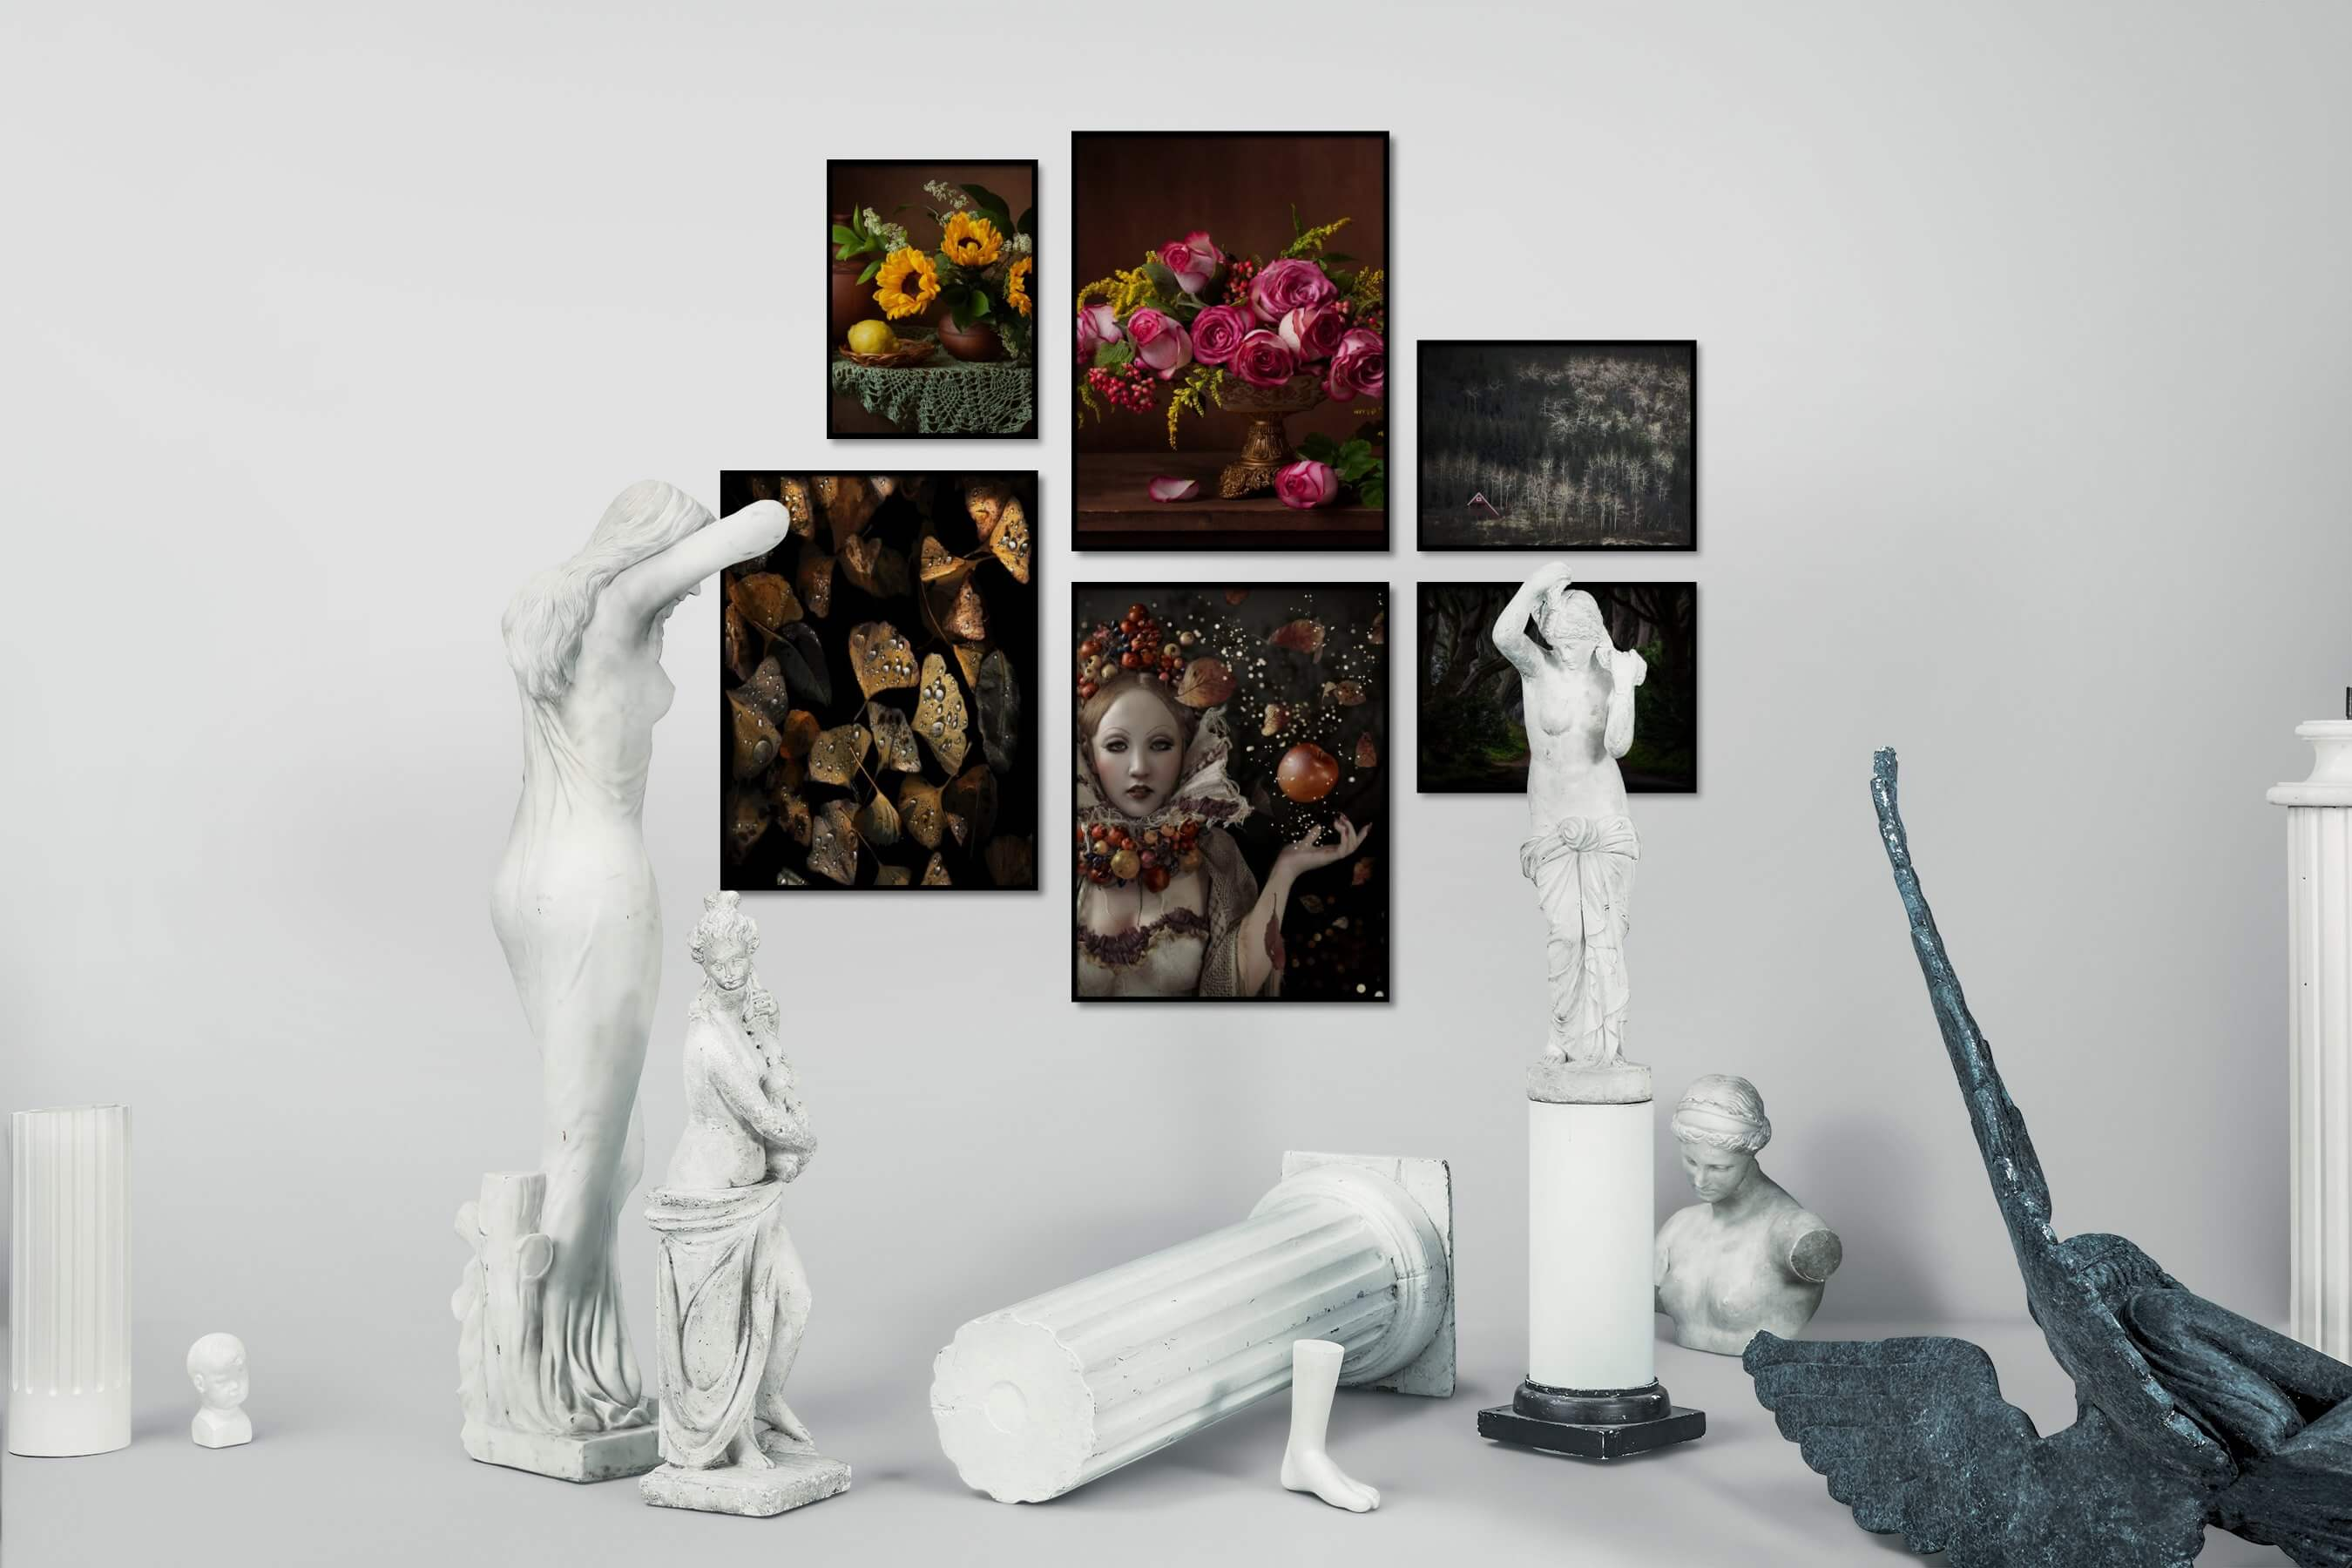 Gallery wall idea with six framed pictures arranged on a wall depicting Flowers & Plants, For the Moderate, Fashion & Beauty, Artsy, Vintage, and Nature